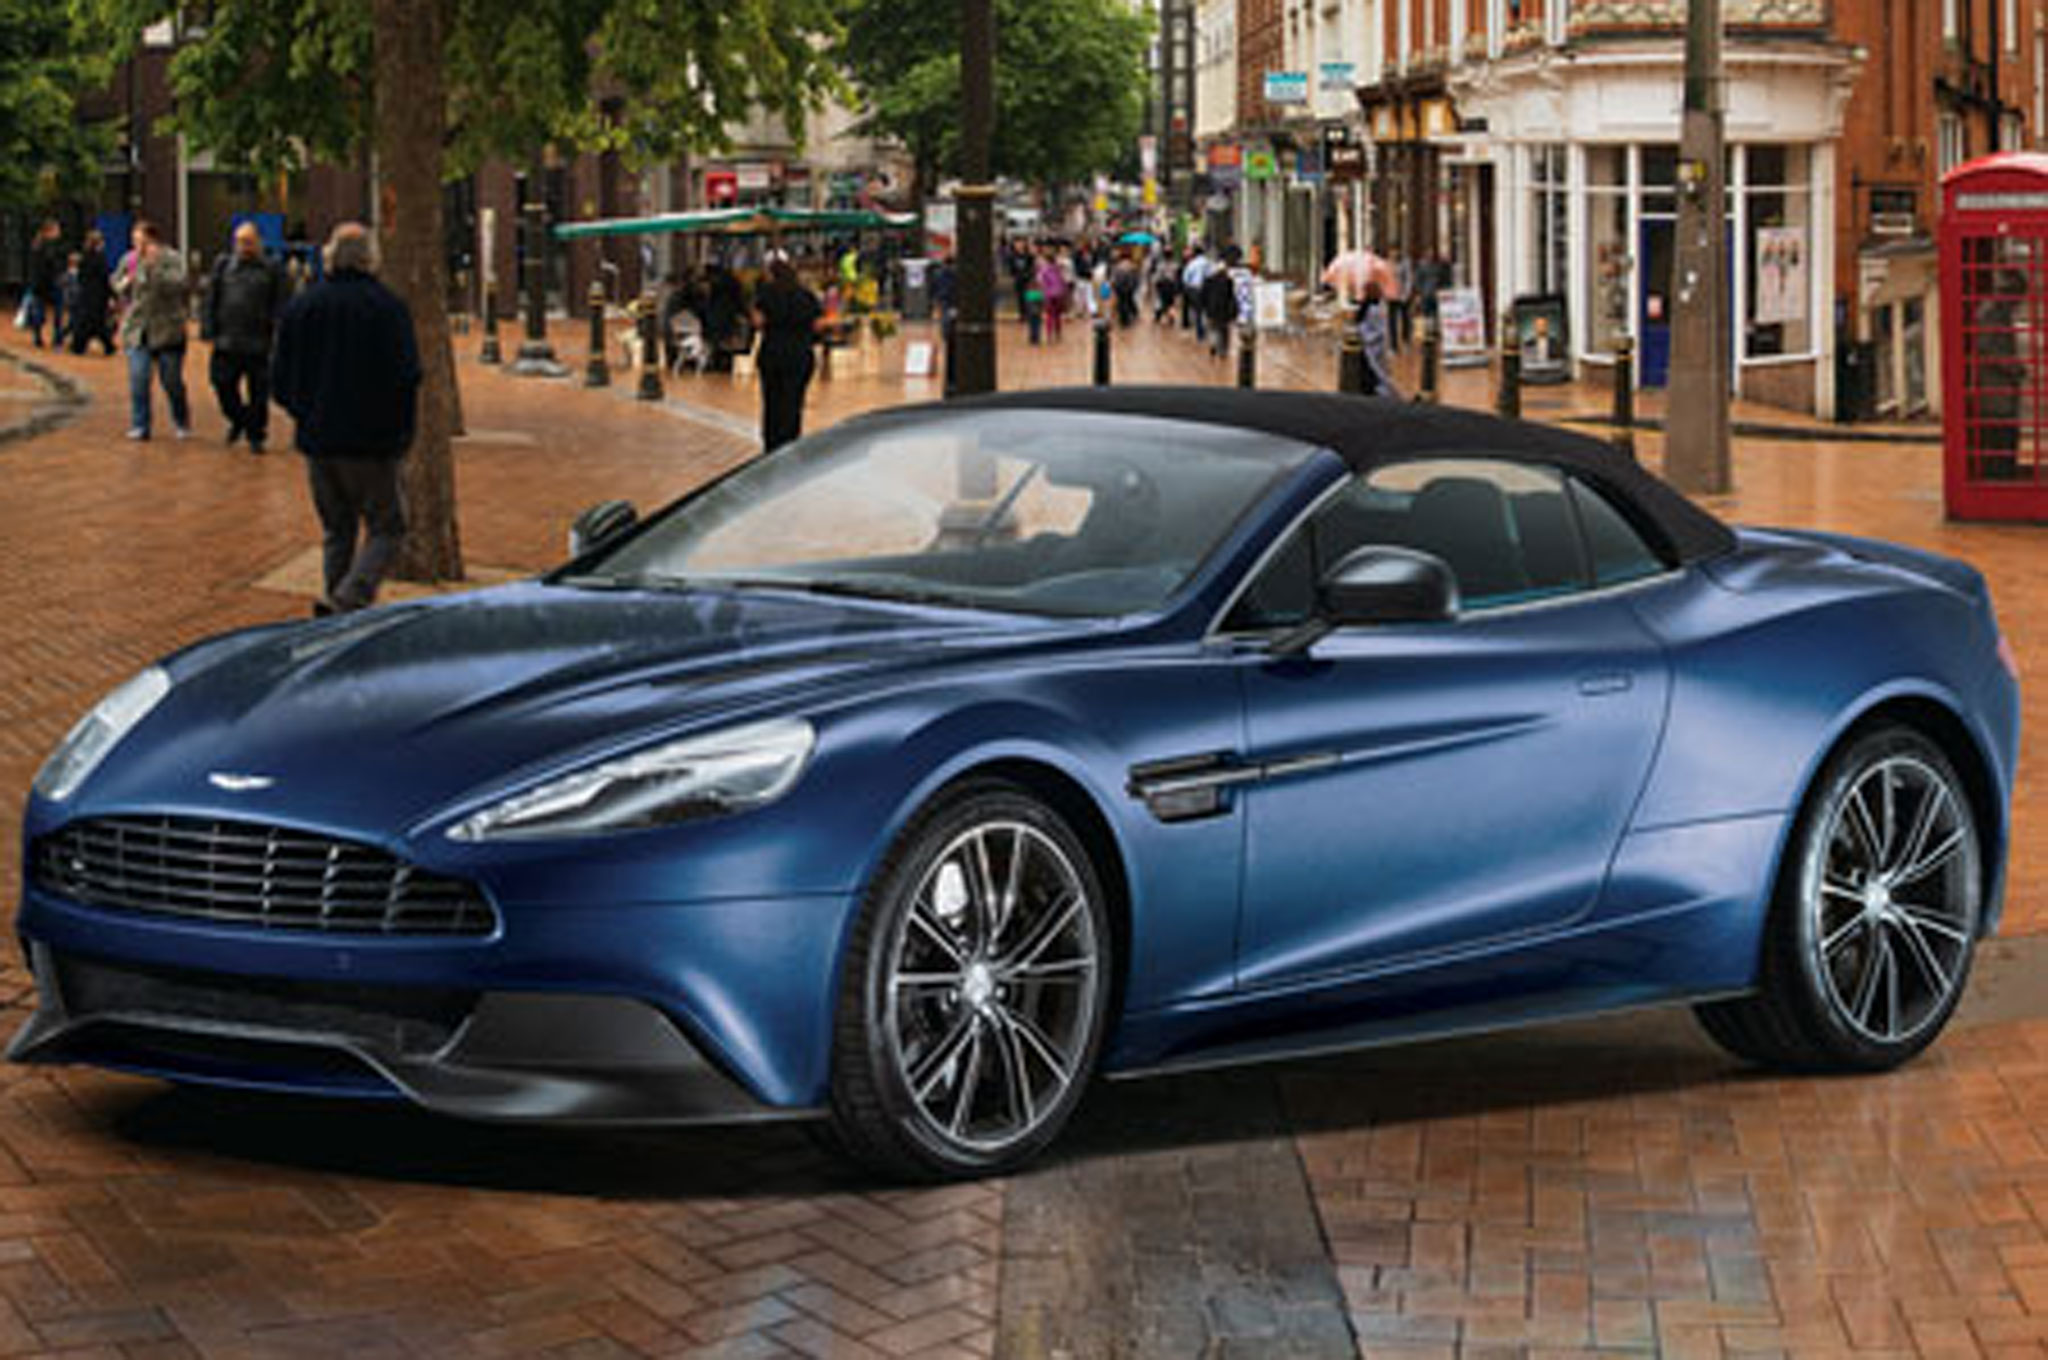 aston martin vanquish 2016 wallpaper   Auto Databasecom 2048x1360